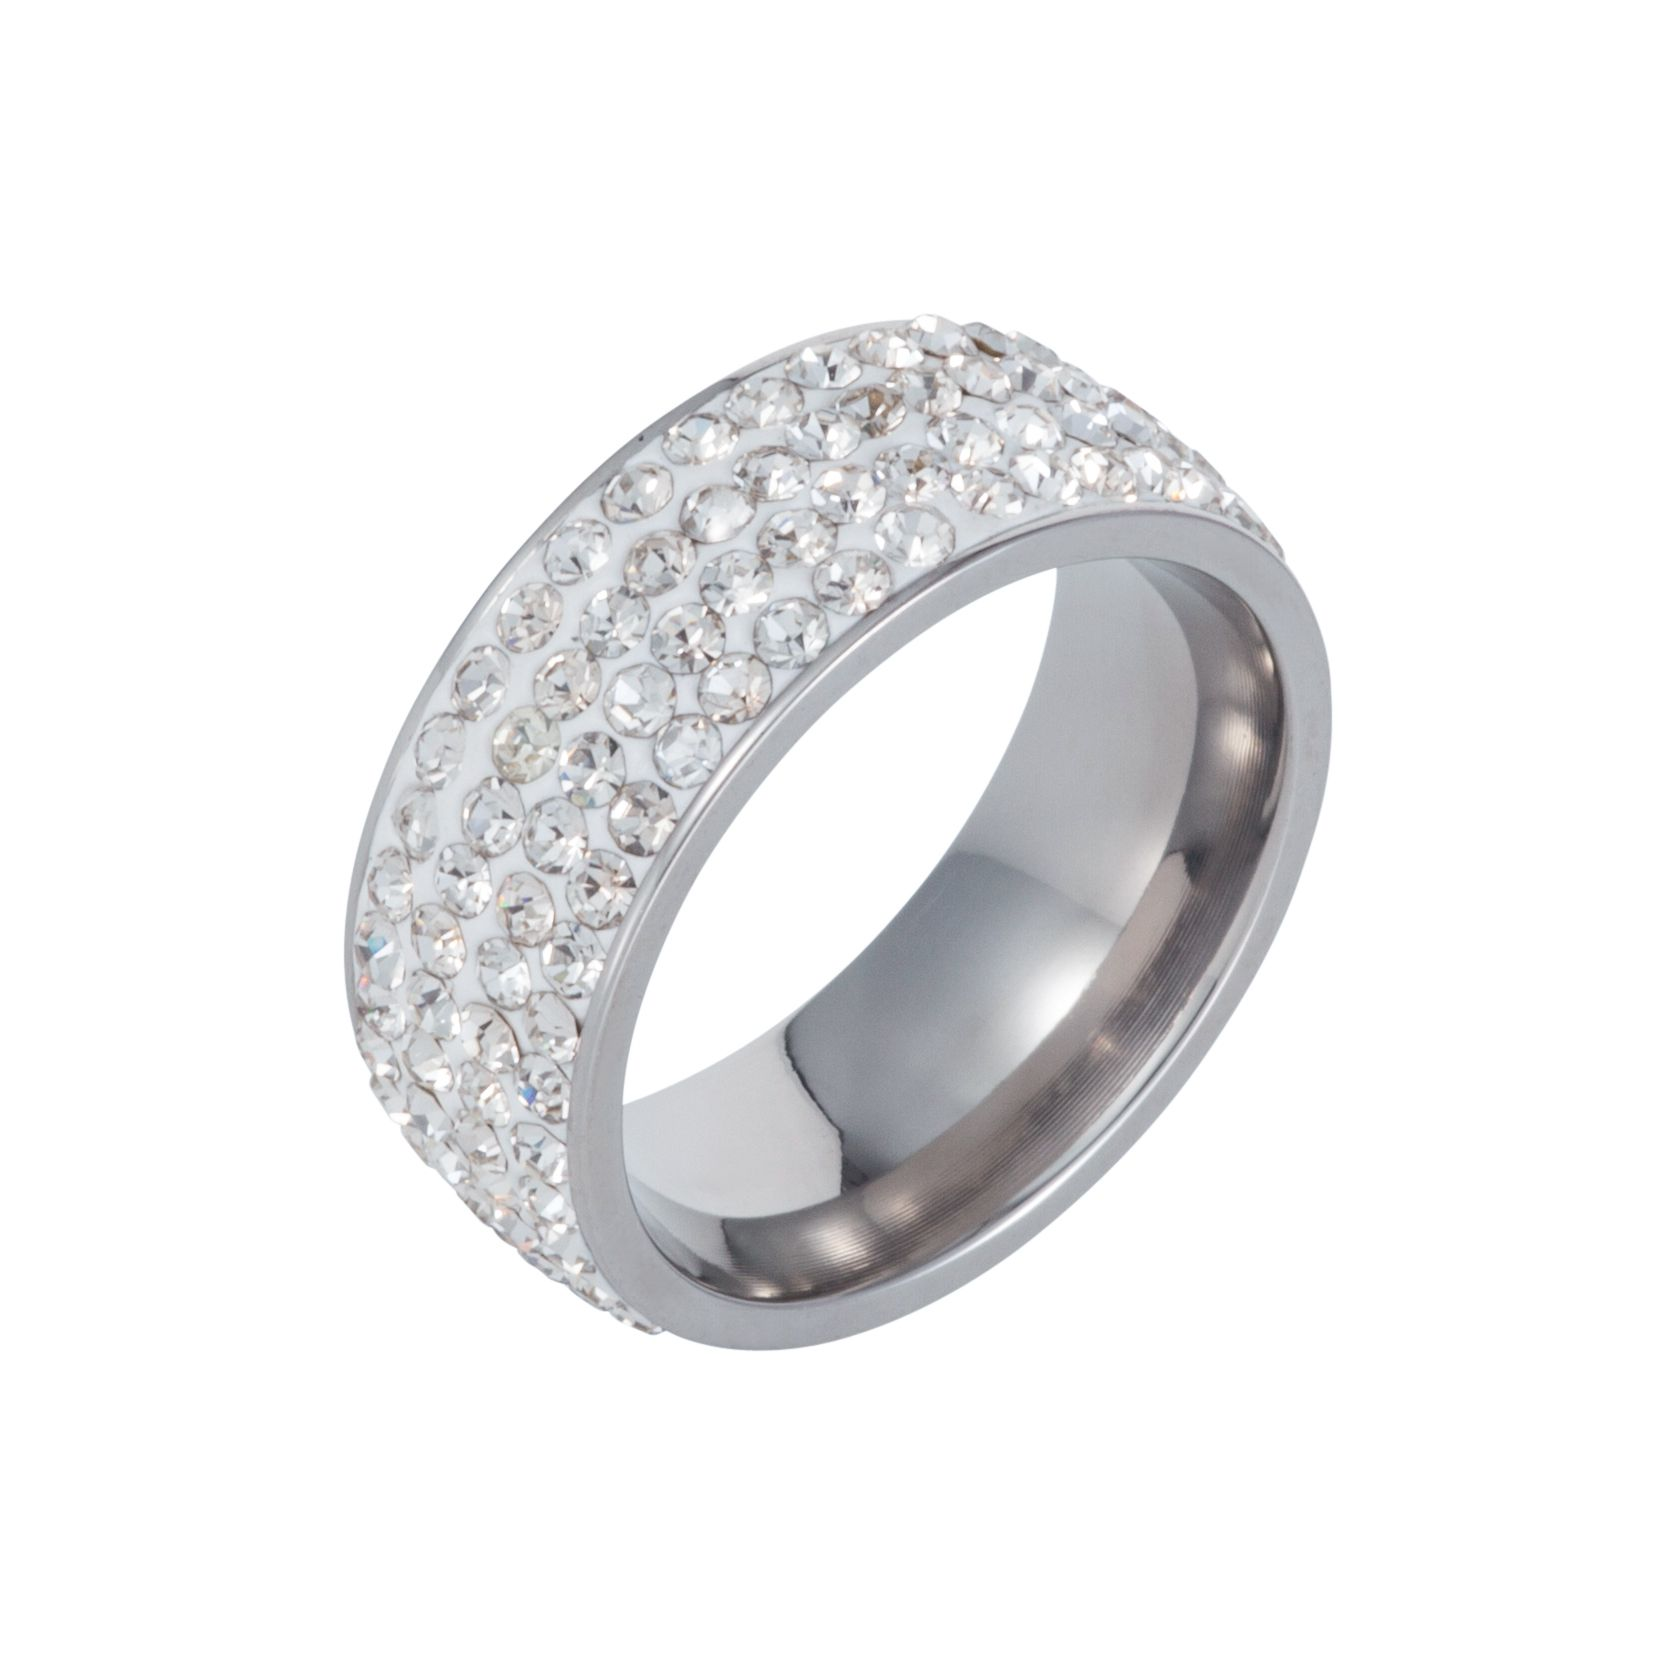 Stainless steel cubic zirconia white ring